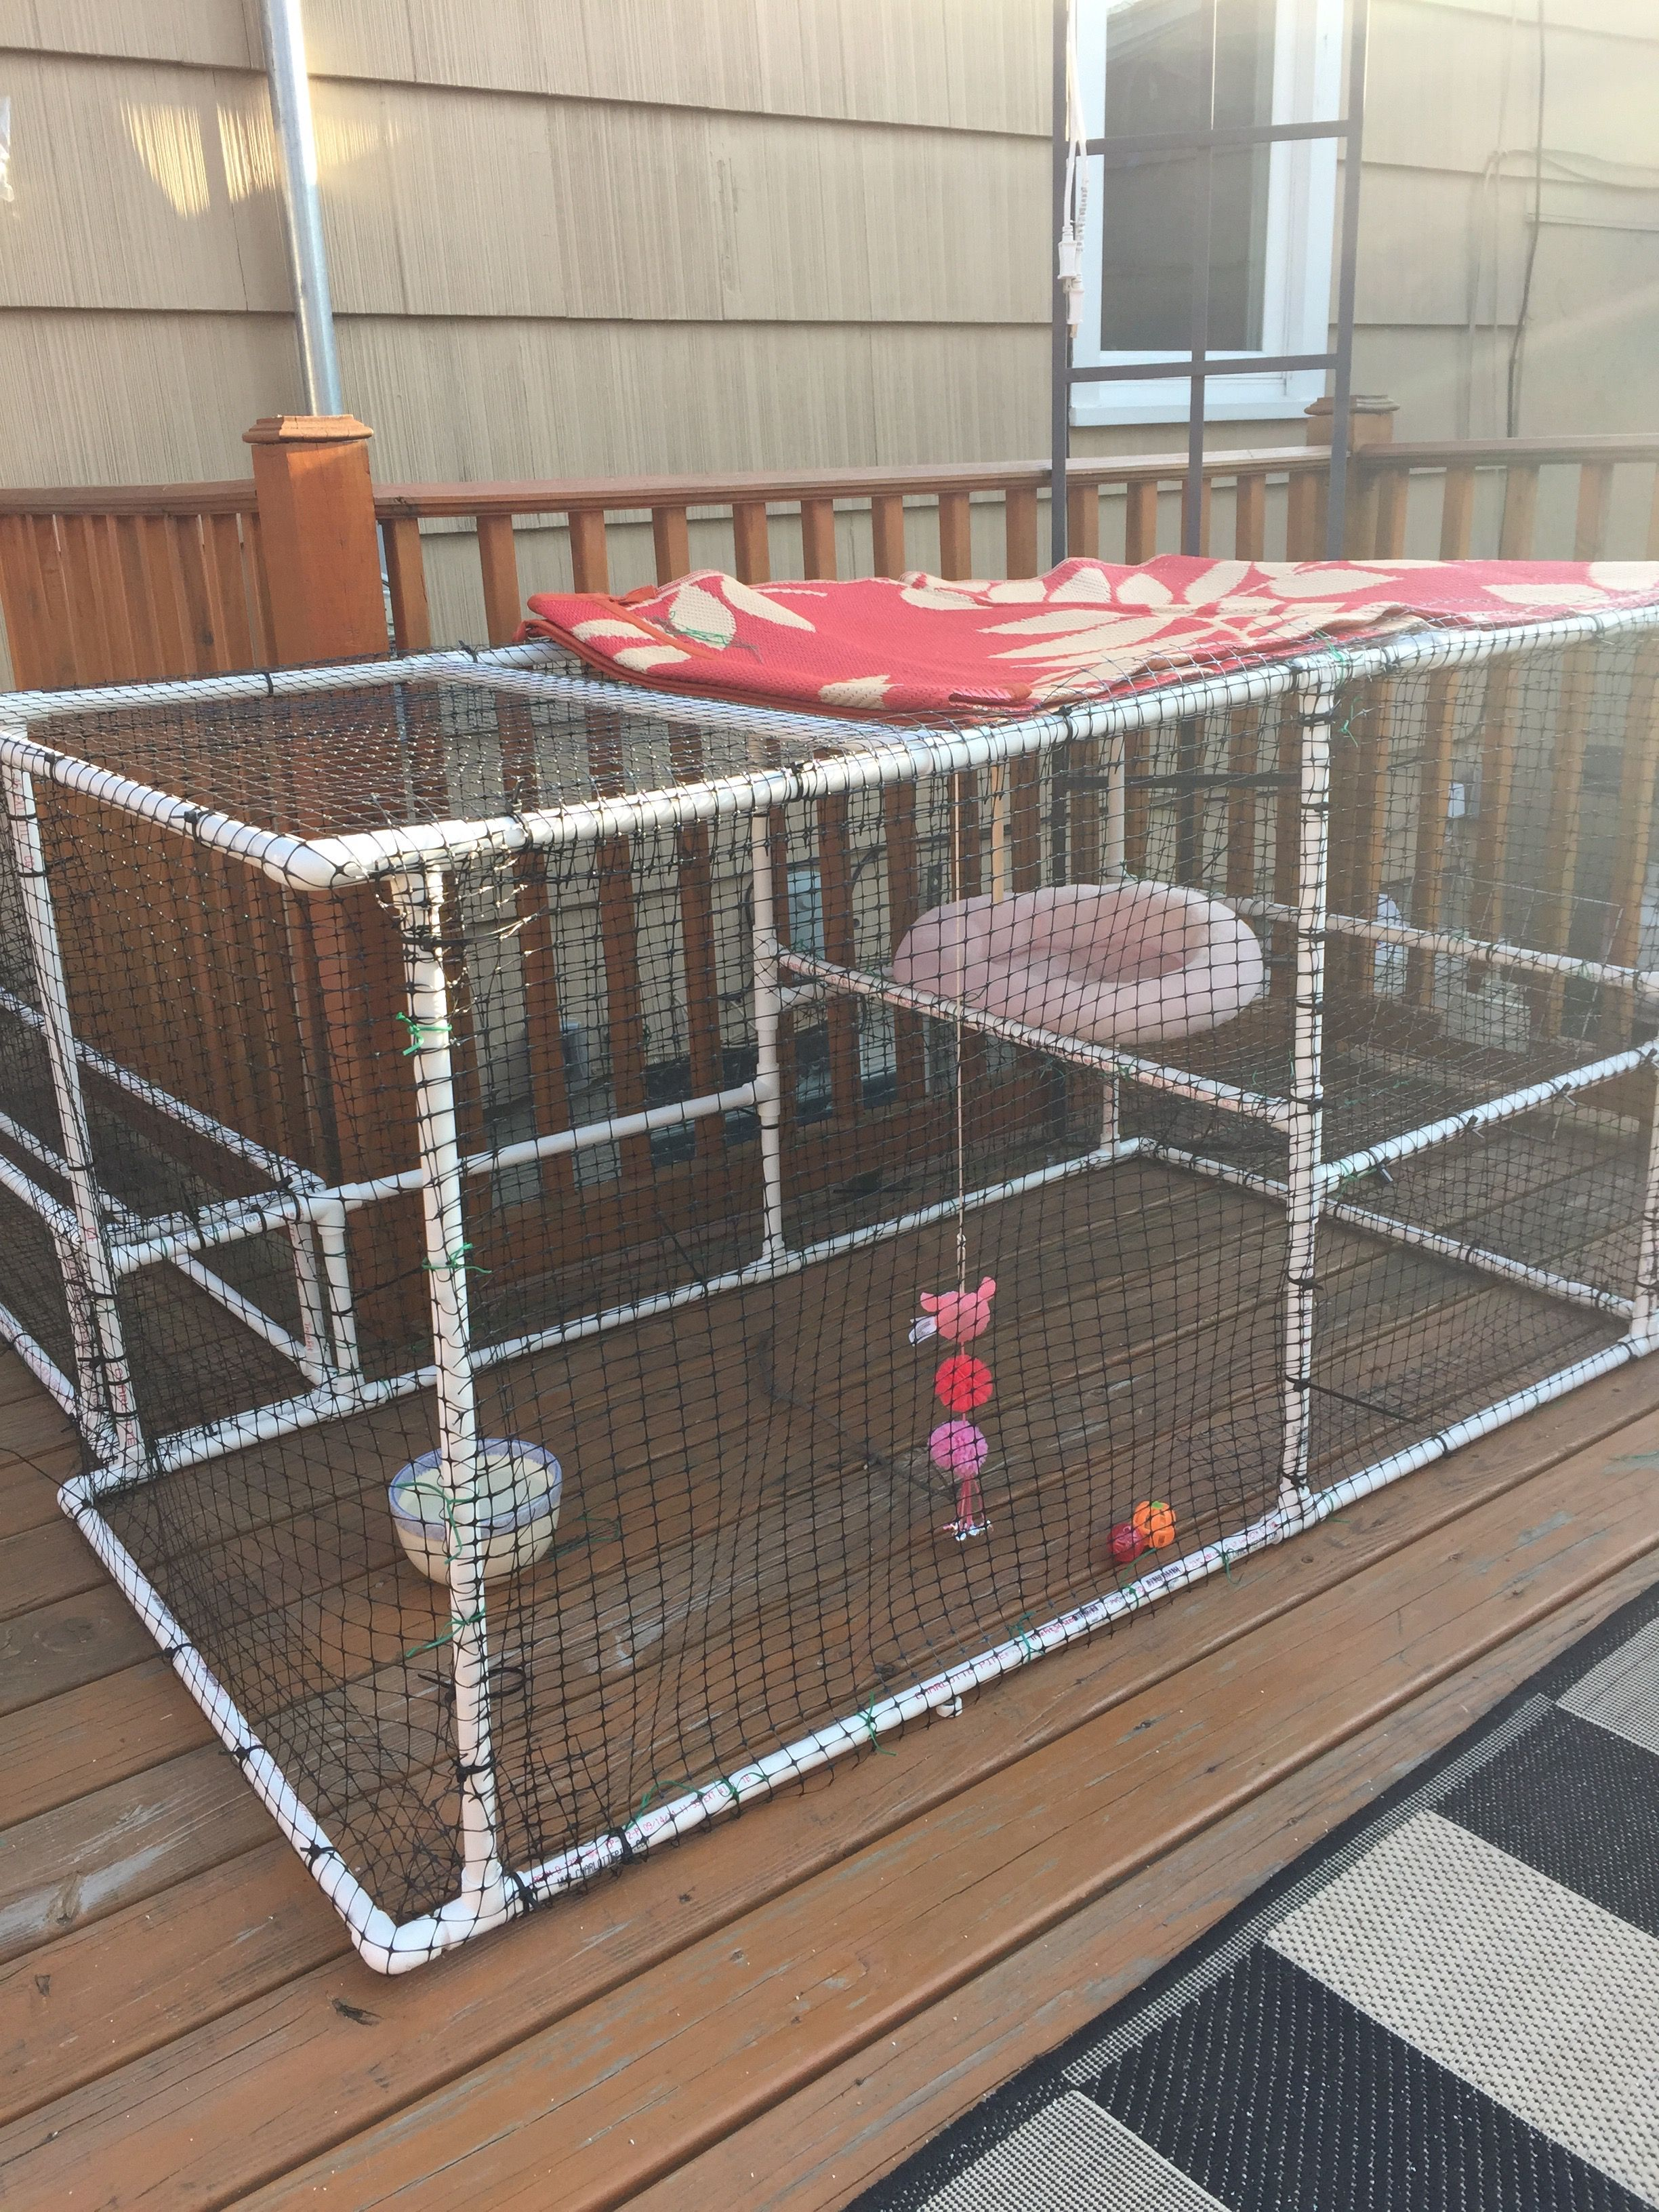 Catio I Made Out Of Pvc Piping Mesh Netting And Zip